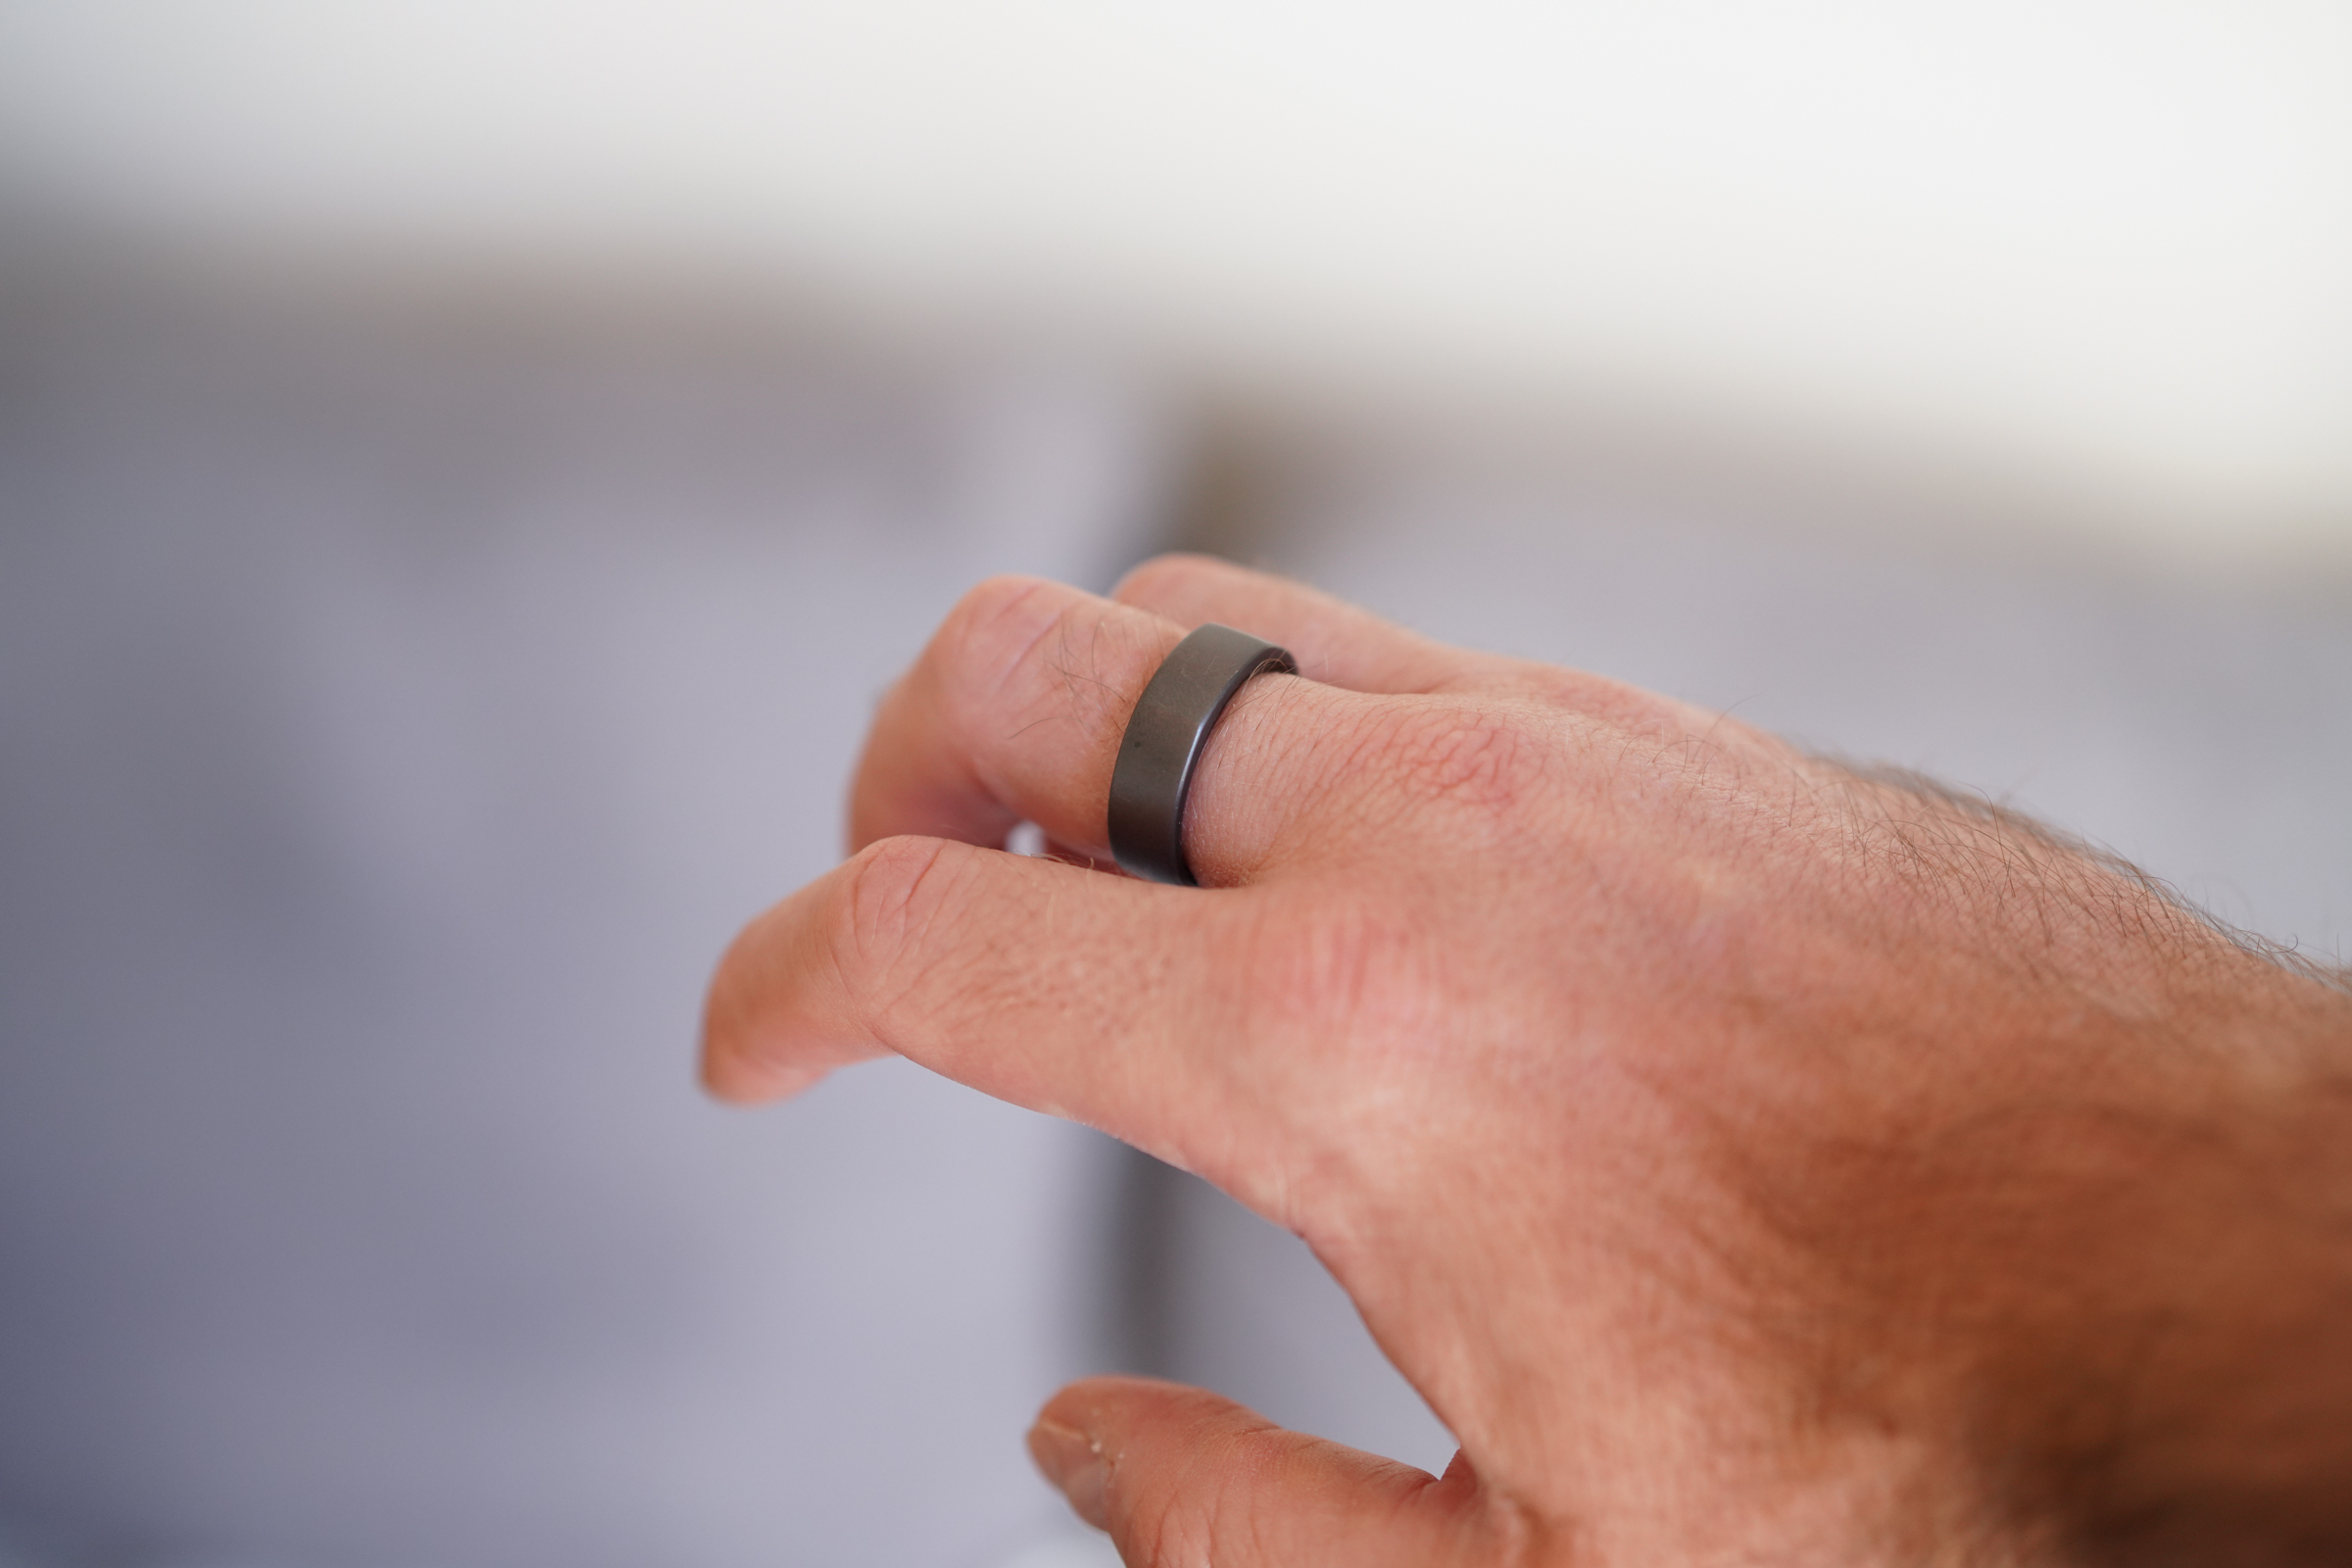 The Oura Ring is the personal health tracking device to beat in 2020